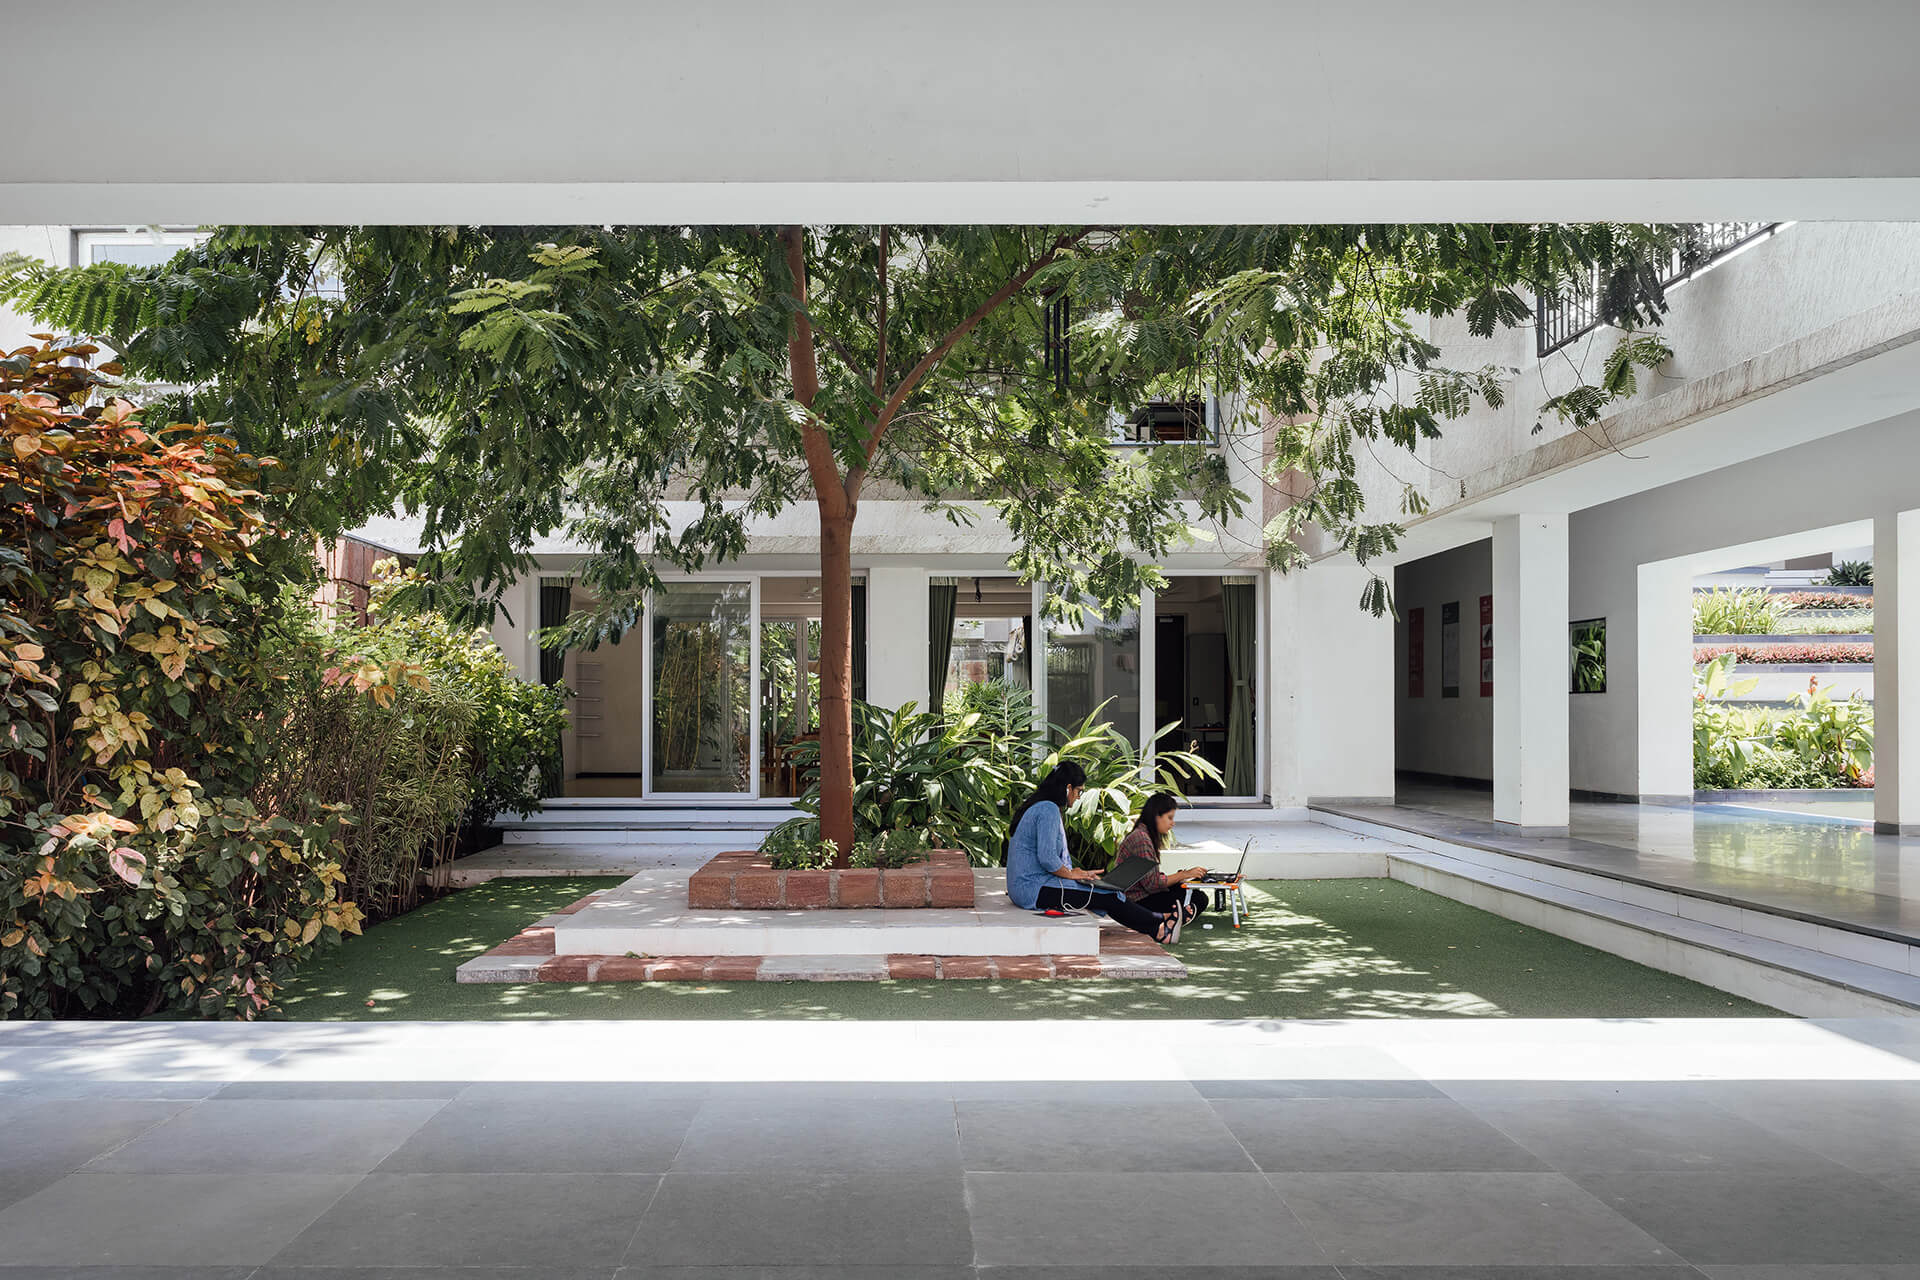 A virtual class session in progress in the courtyard | The Northstar School by Shanmugam Associates | STIRworld